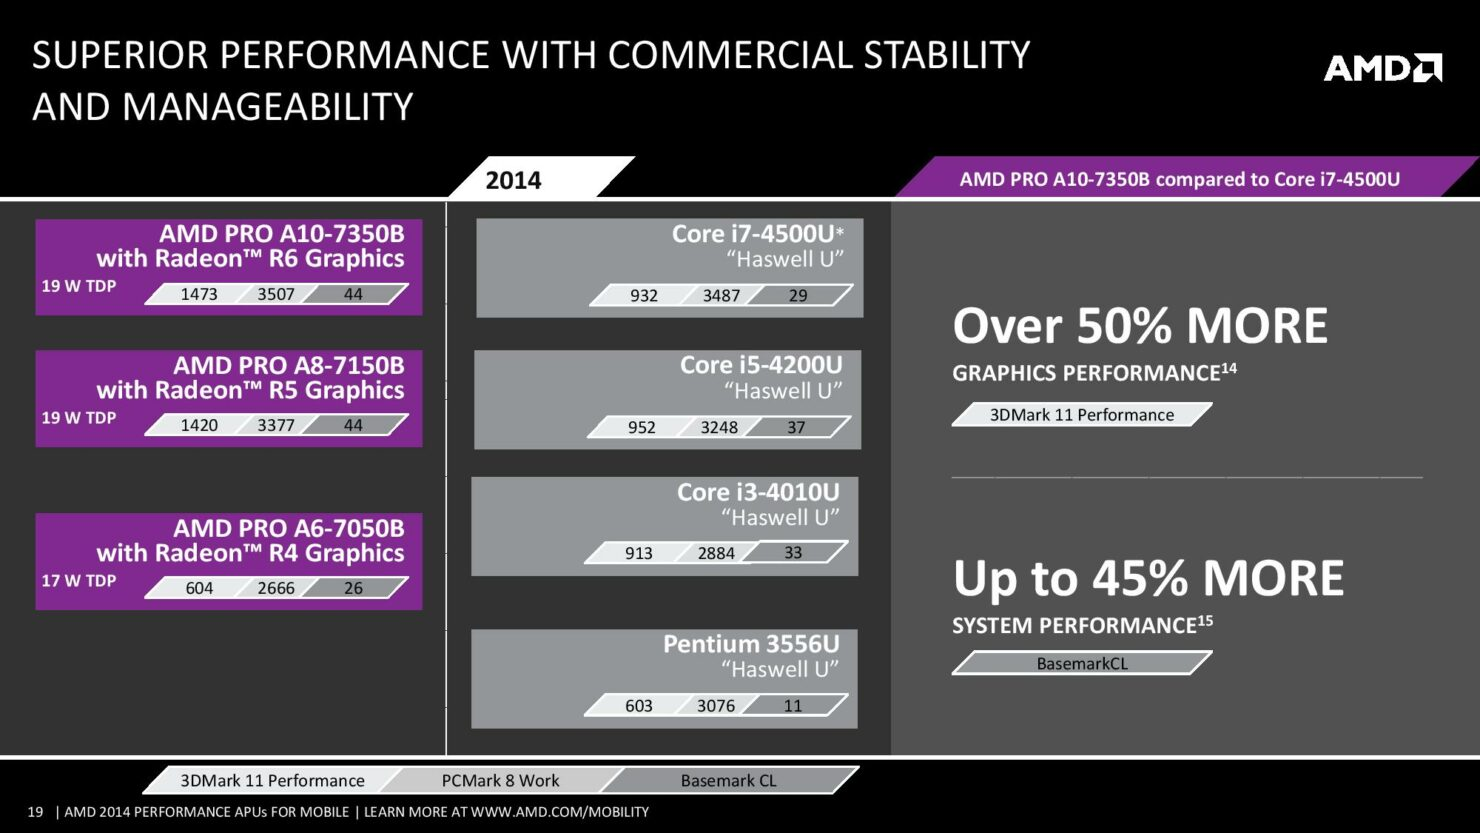 amd2014performancemobileapus-140528183404-phpapp02-page-019